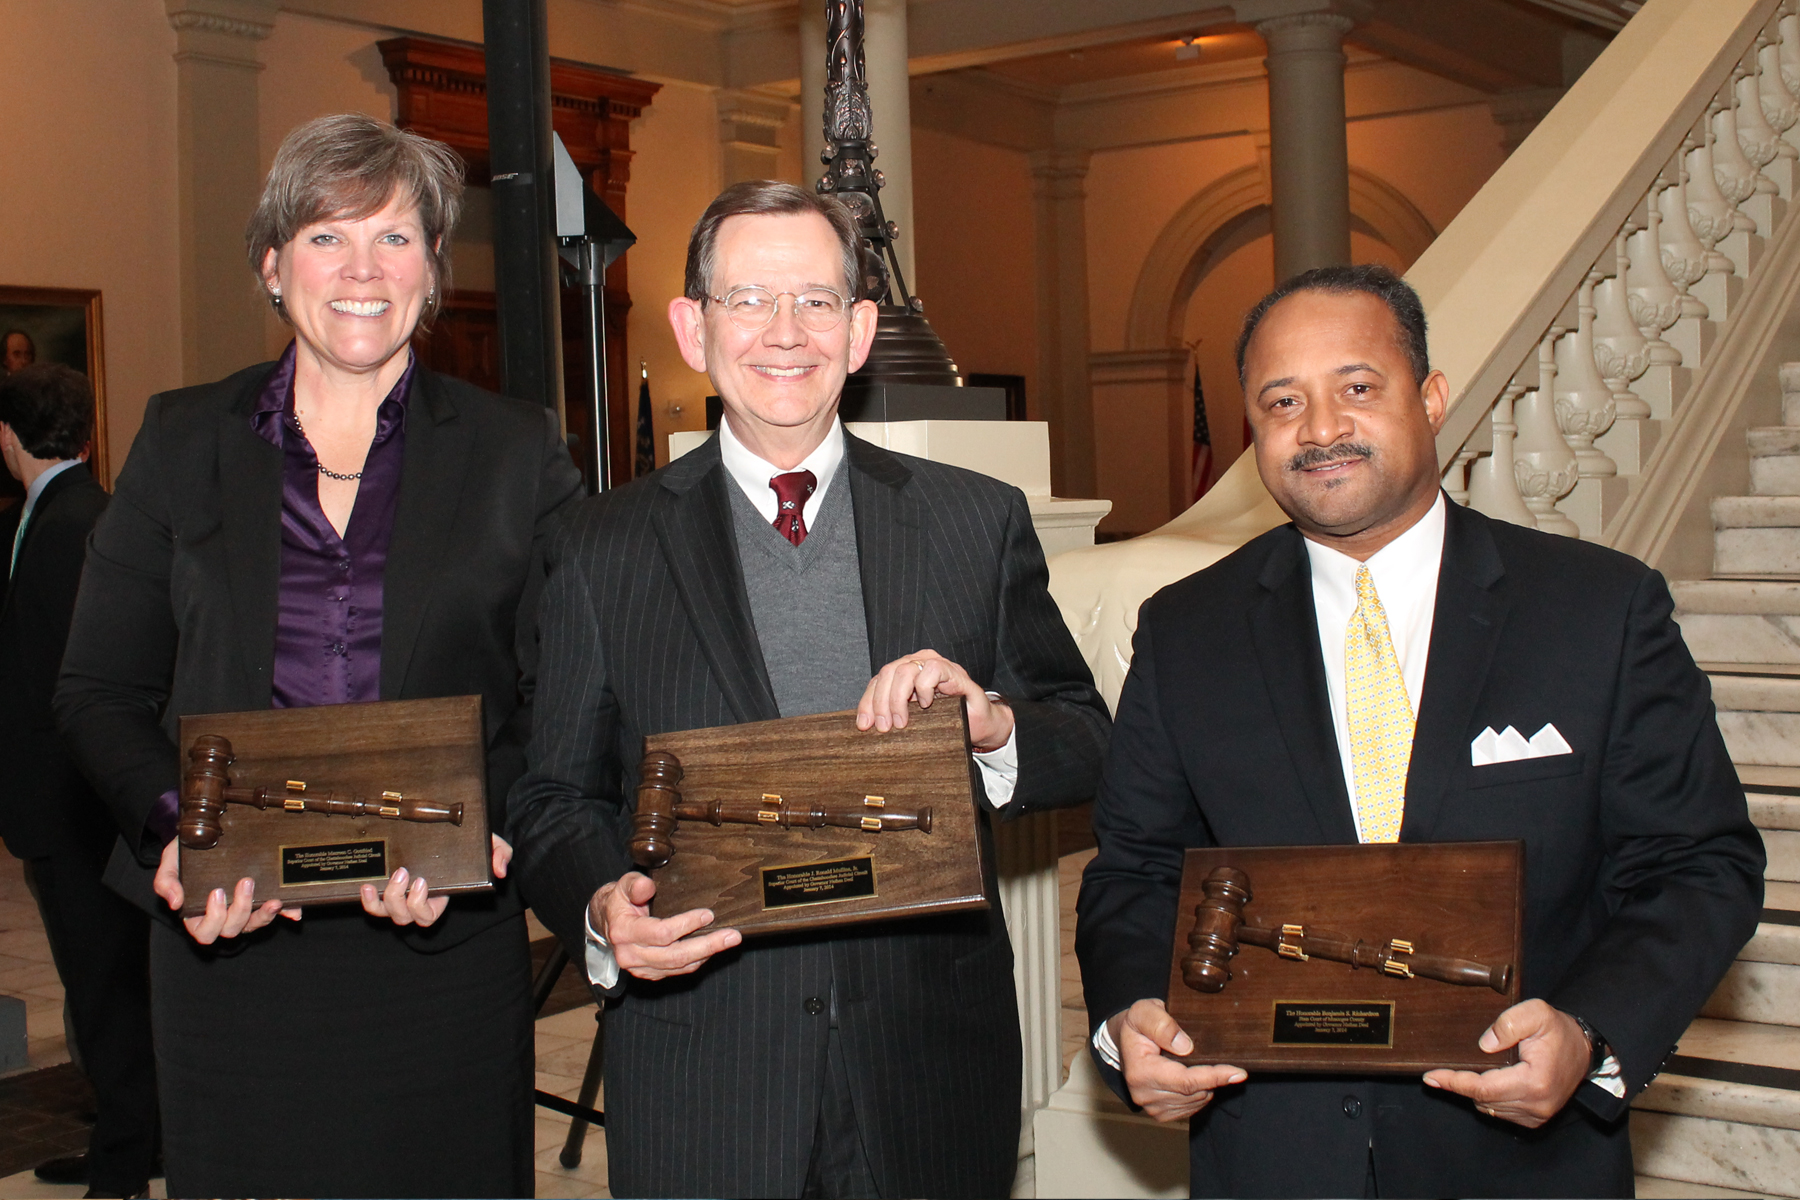 Judge Maureen Gottfried, Judge Ron Mullins, and Judge Benjamin Richardson